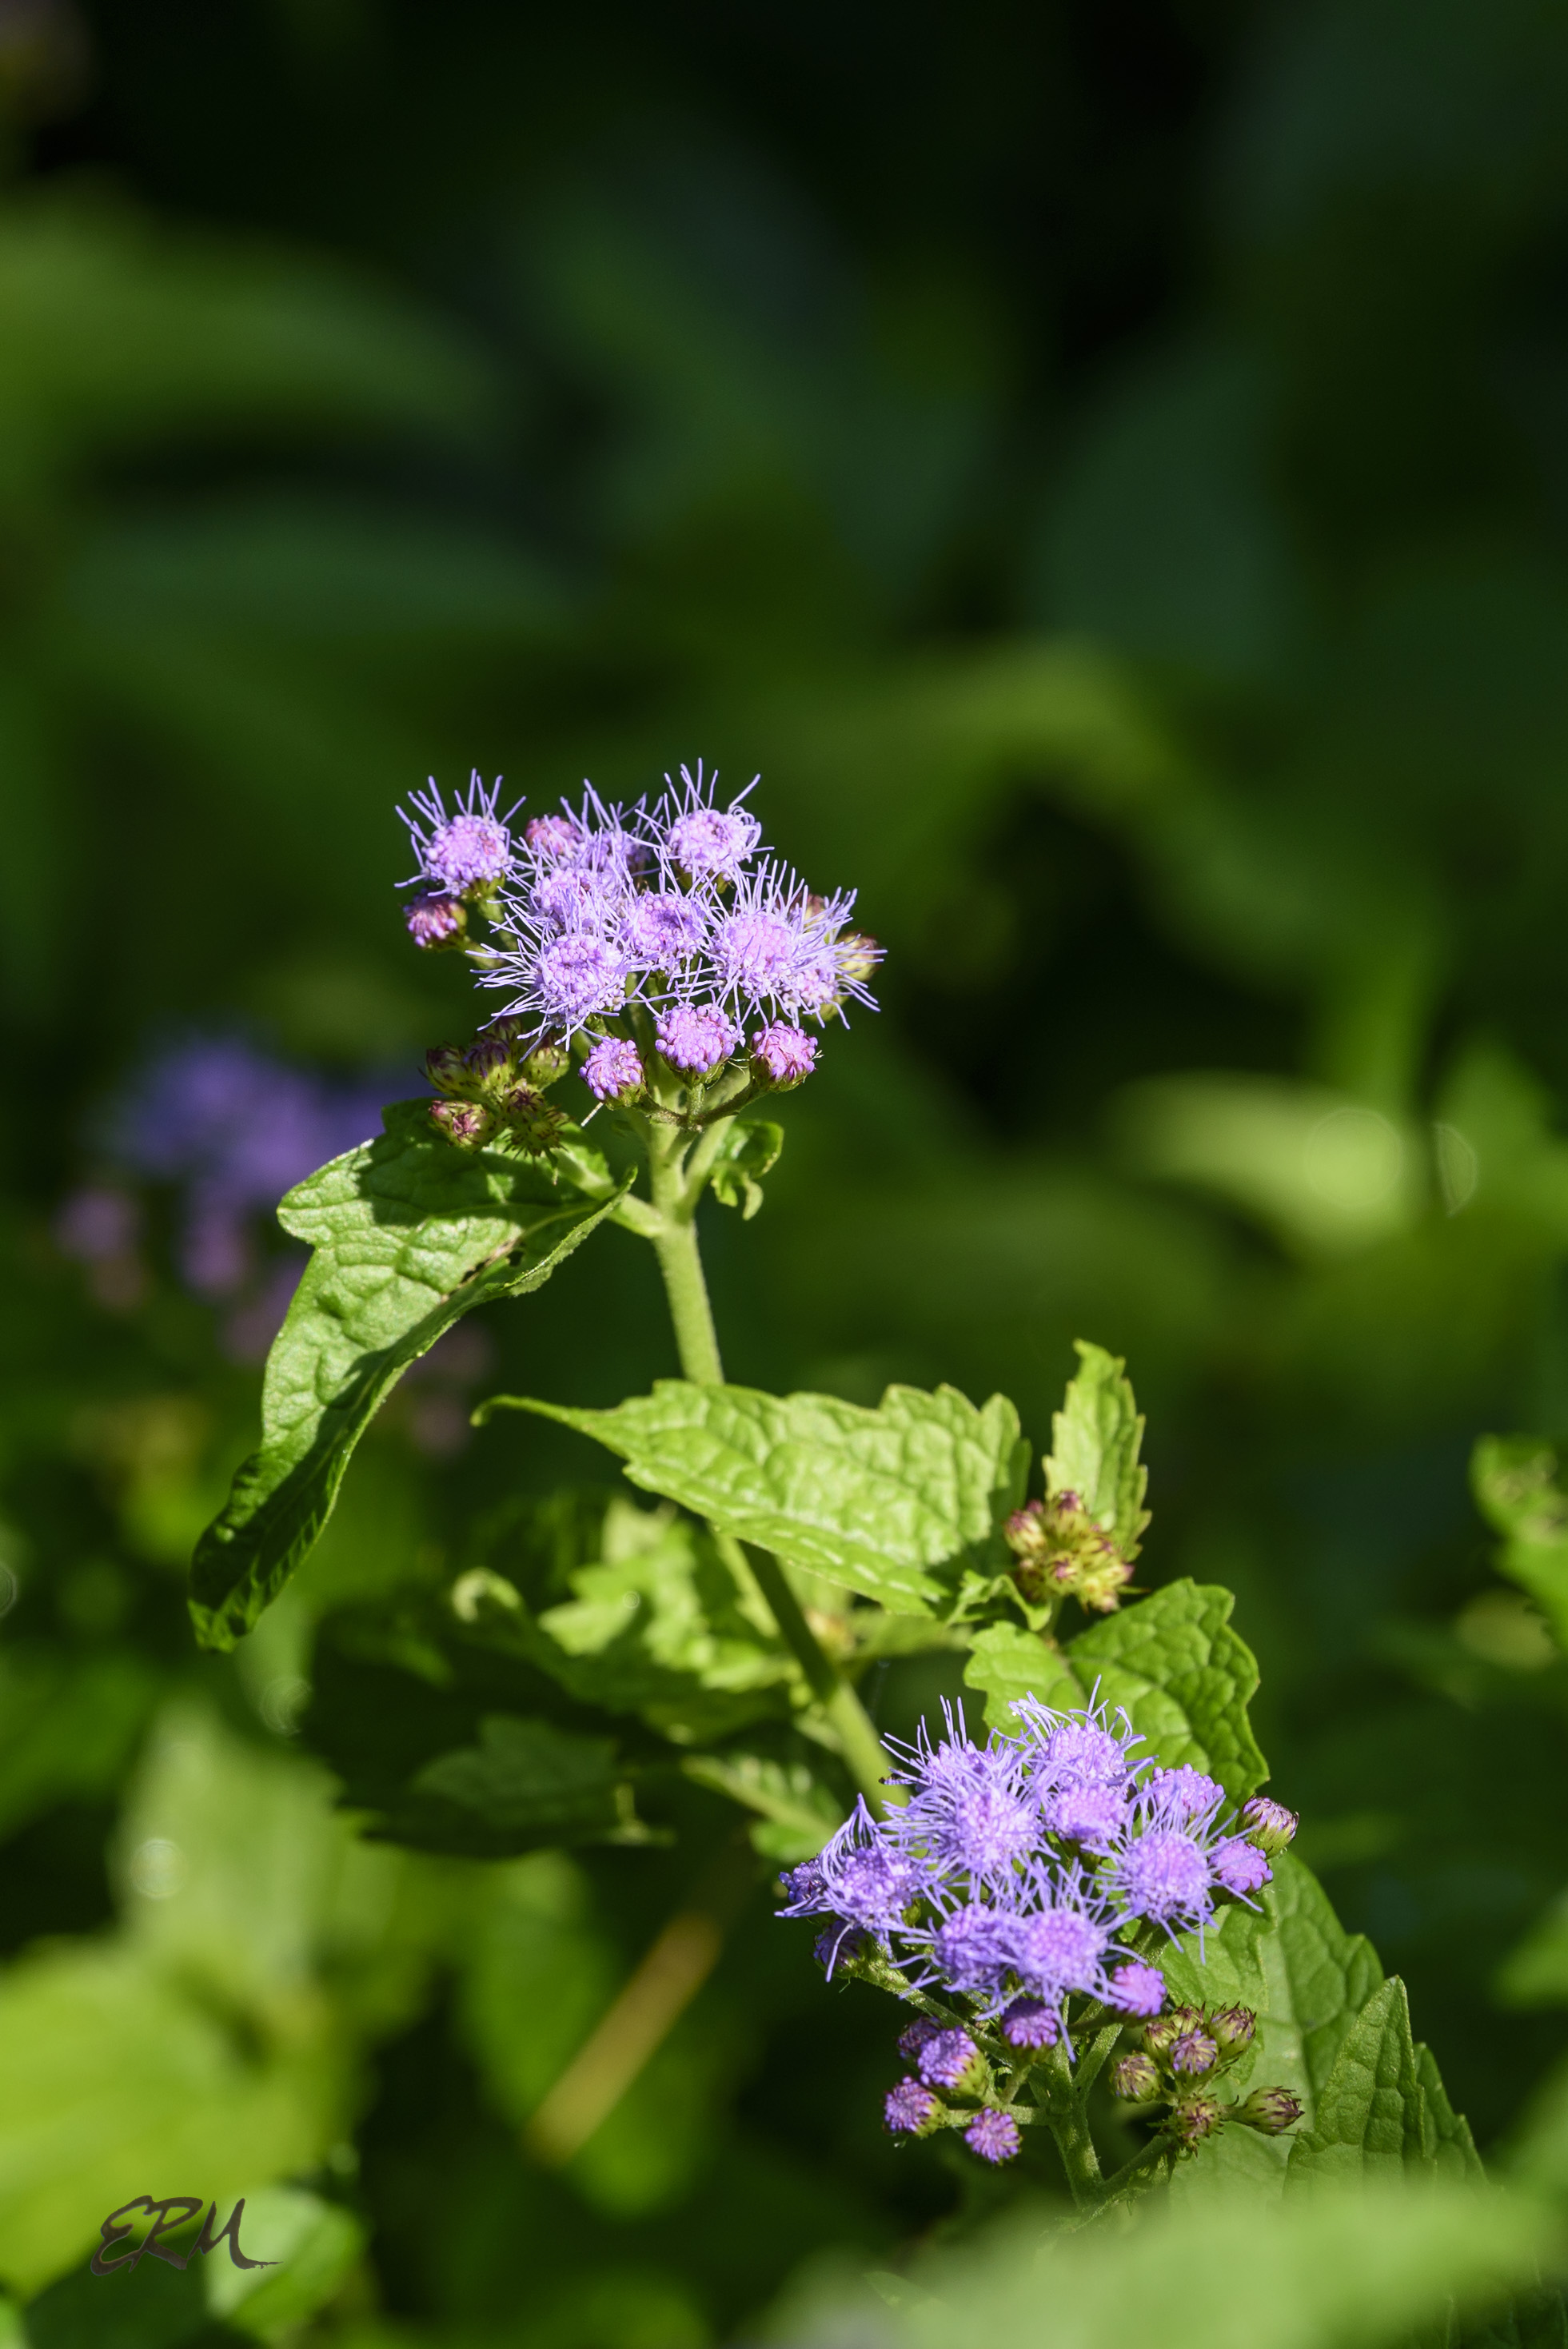 Astery things 4 blue mistflower elizabeths wildflower blog next in the series of posts on composite flowers lacking ray florets is blue mistflower like the joe pye weeds blue mistflower was once placed in the izmirmasajfo